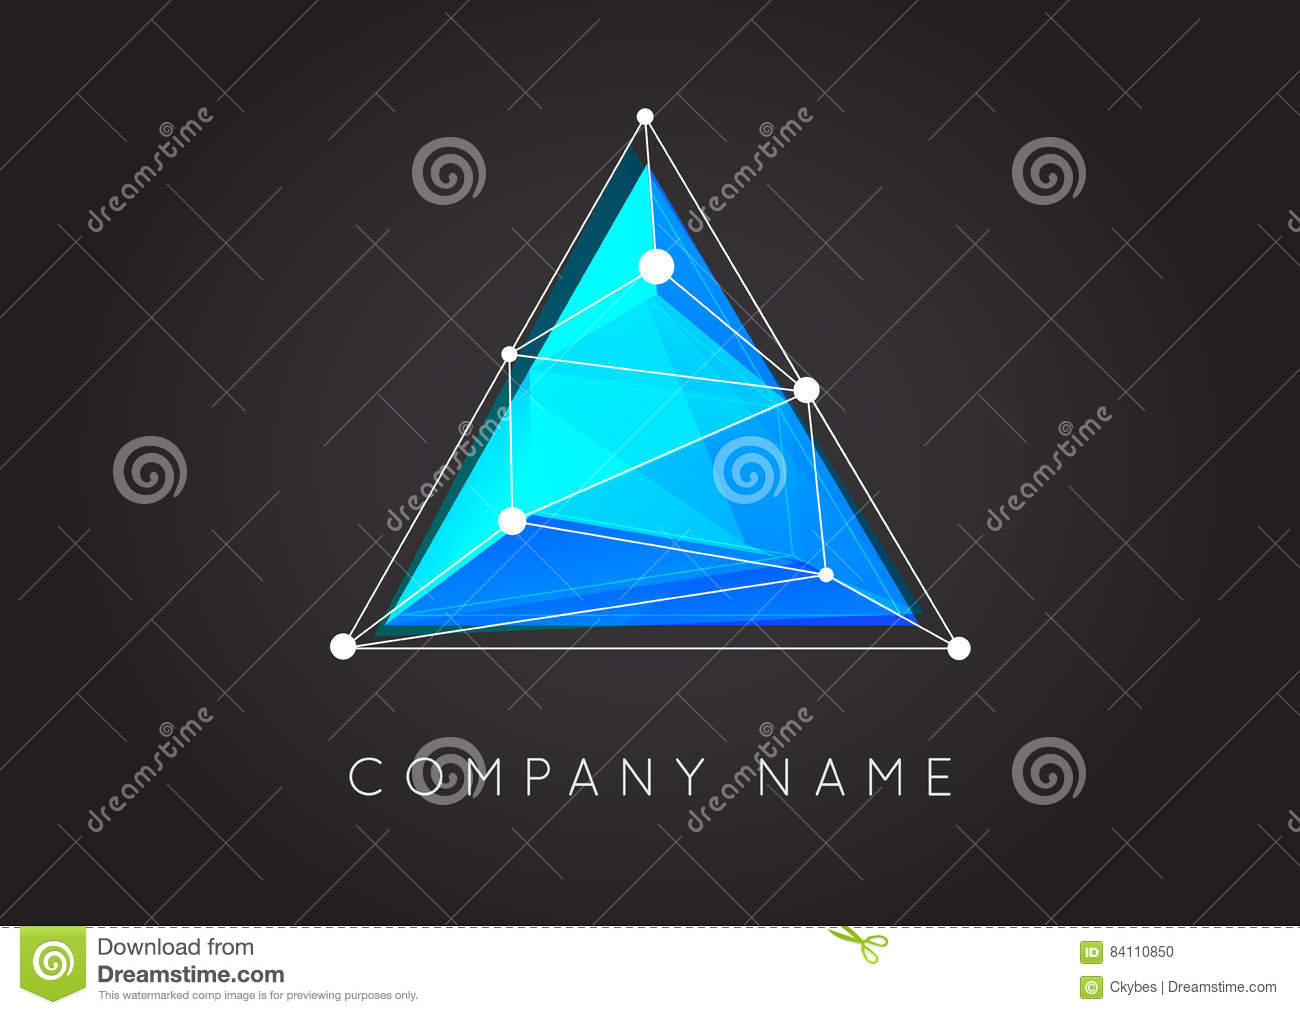 Geometric Shapes Unusual and Abstract Vector Logo. Polygonal Co